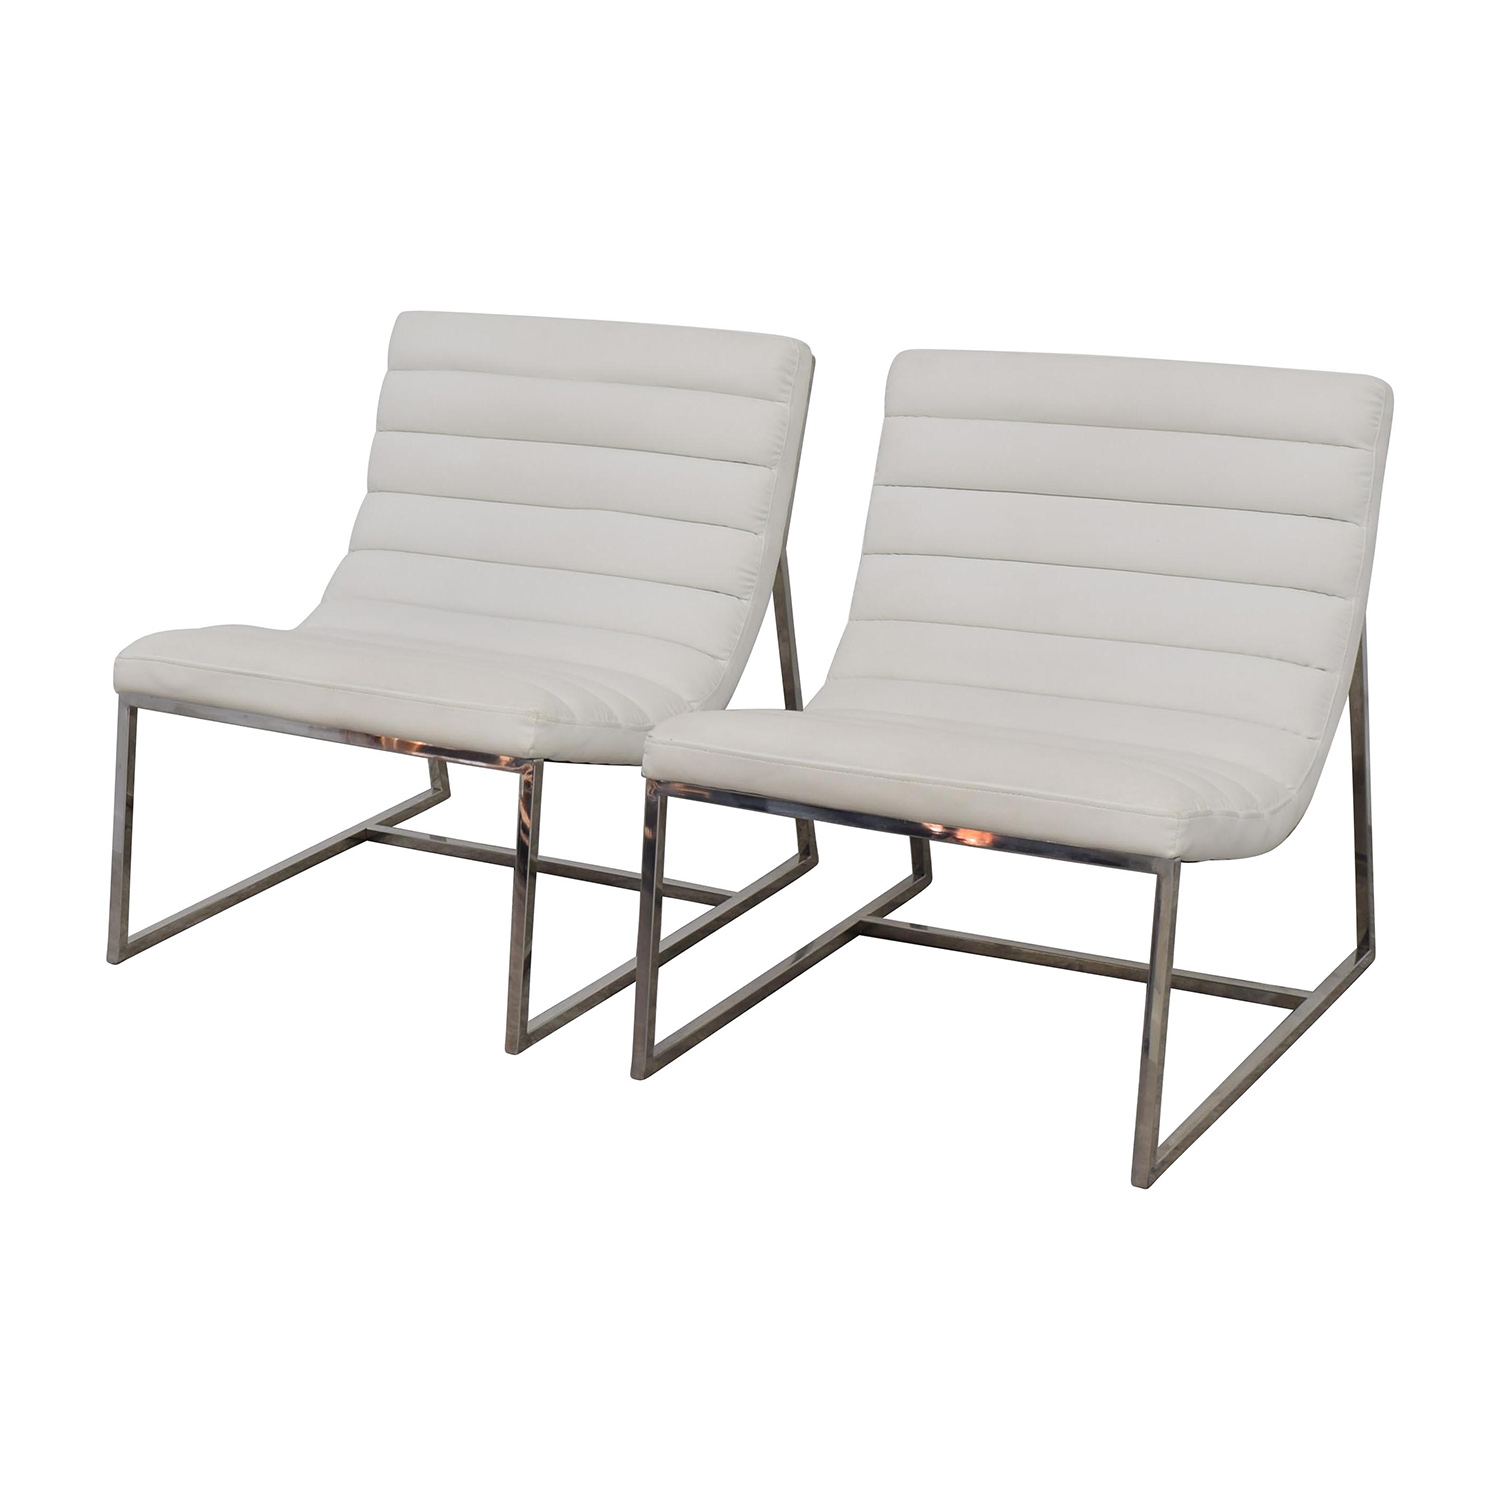 White Leather Sofa And Chair: White Leather Sofa Chairs / Chairs